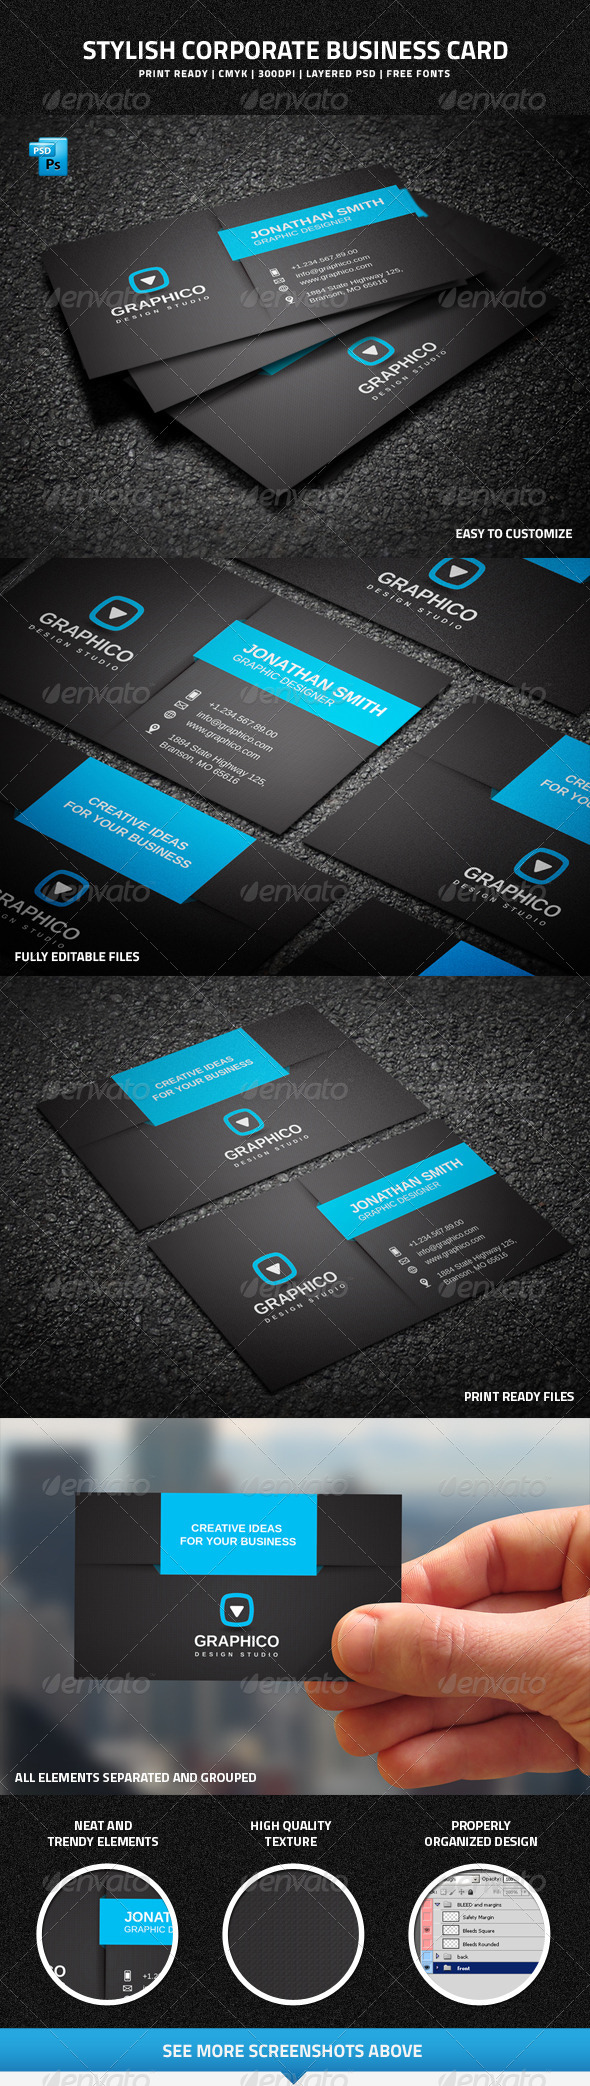 GraphicRiver Stylish Corporate Business Card 7497982